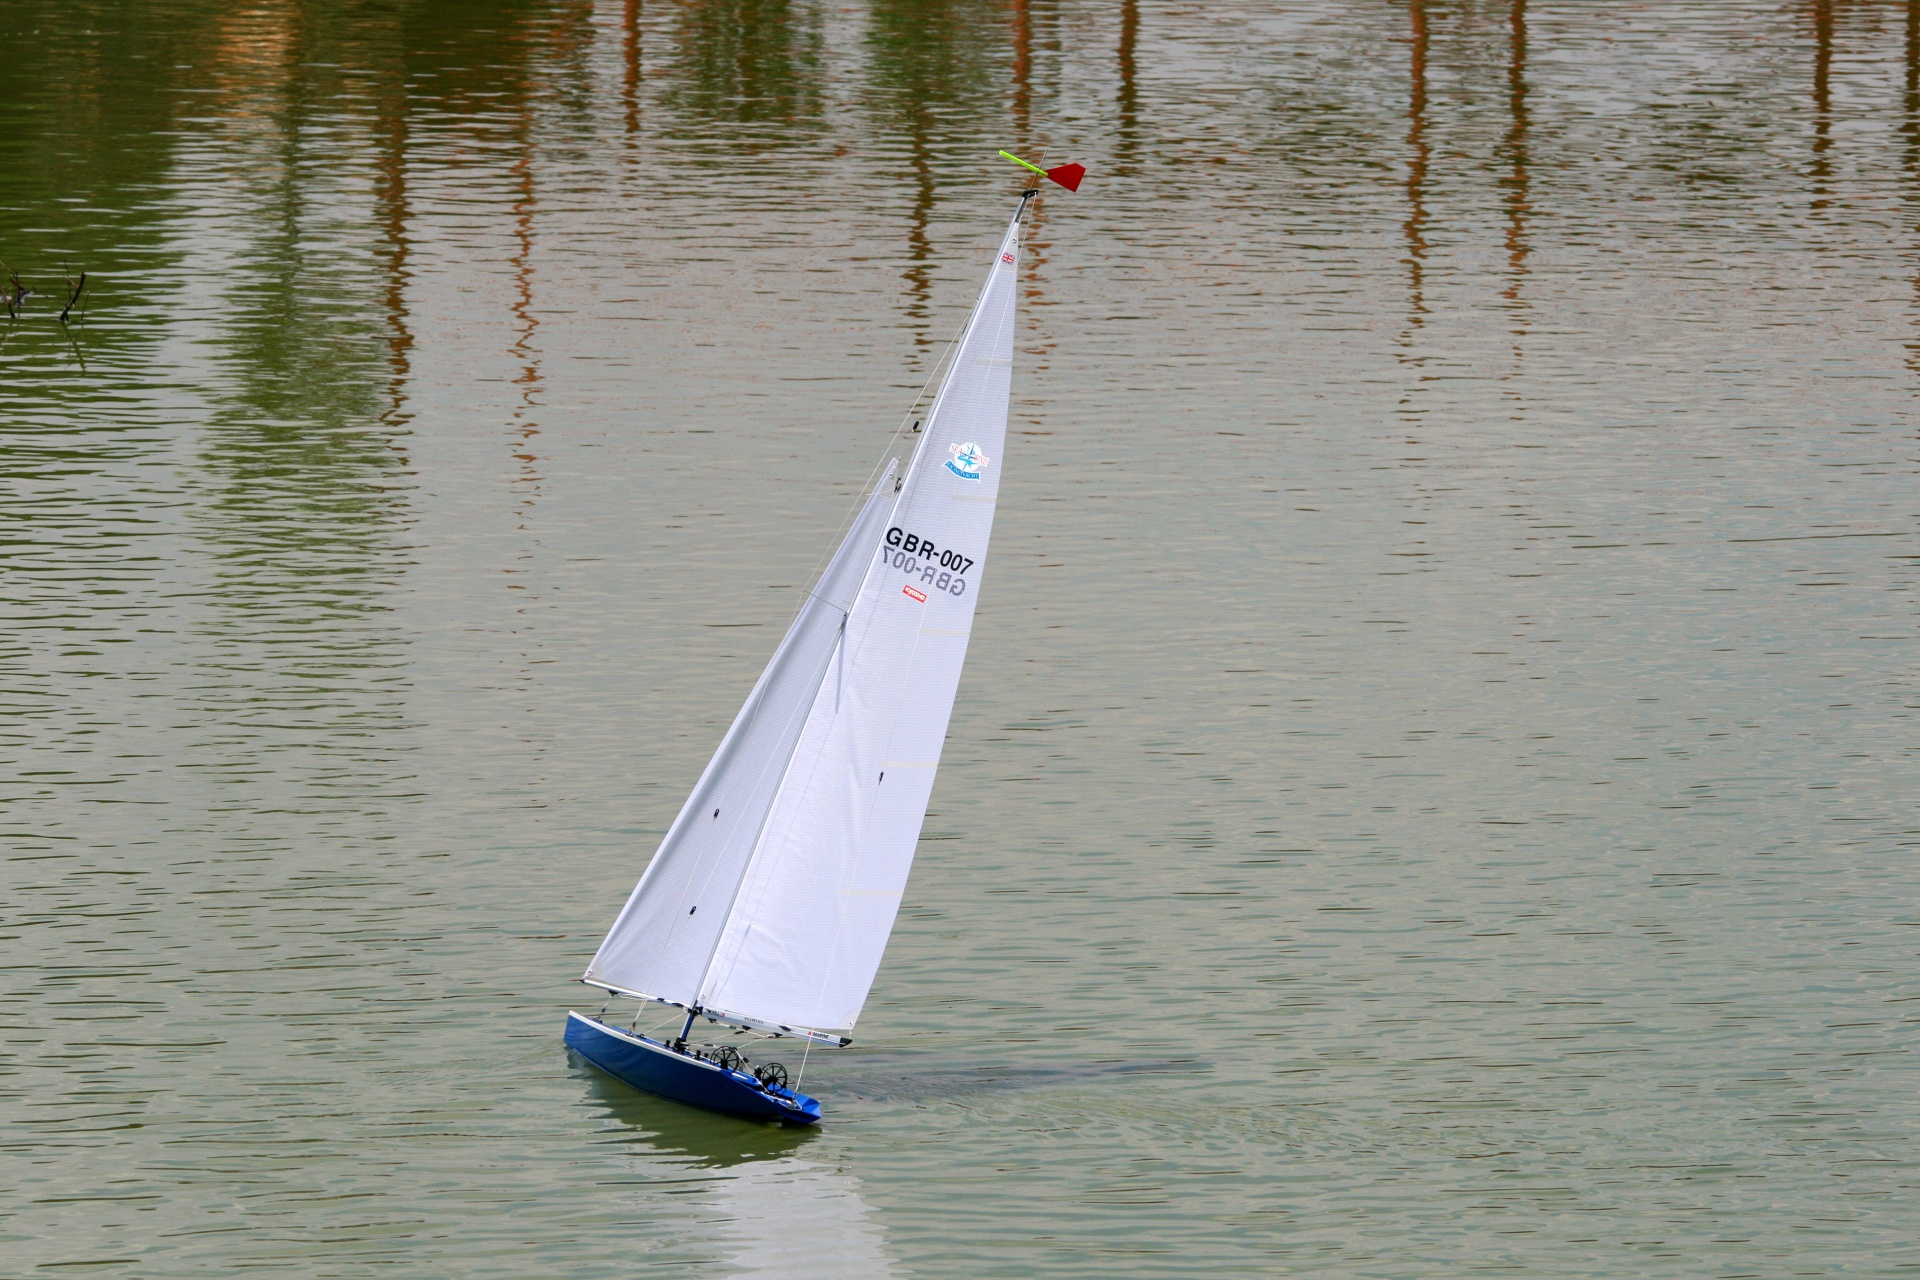 Yacht,model,sails,sailing,tilted - free photo from needpix com